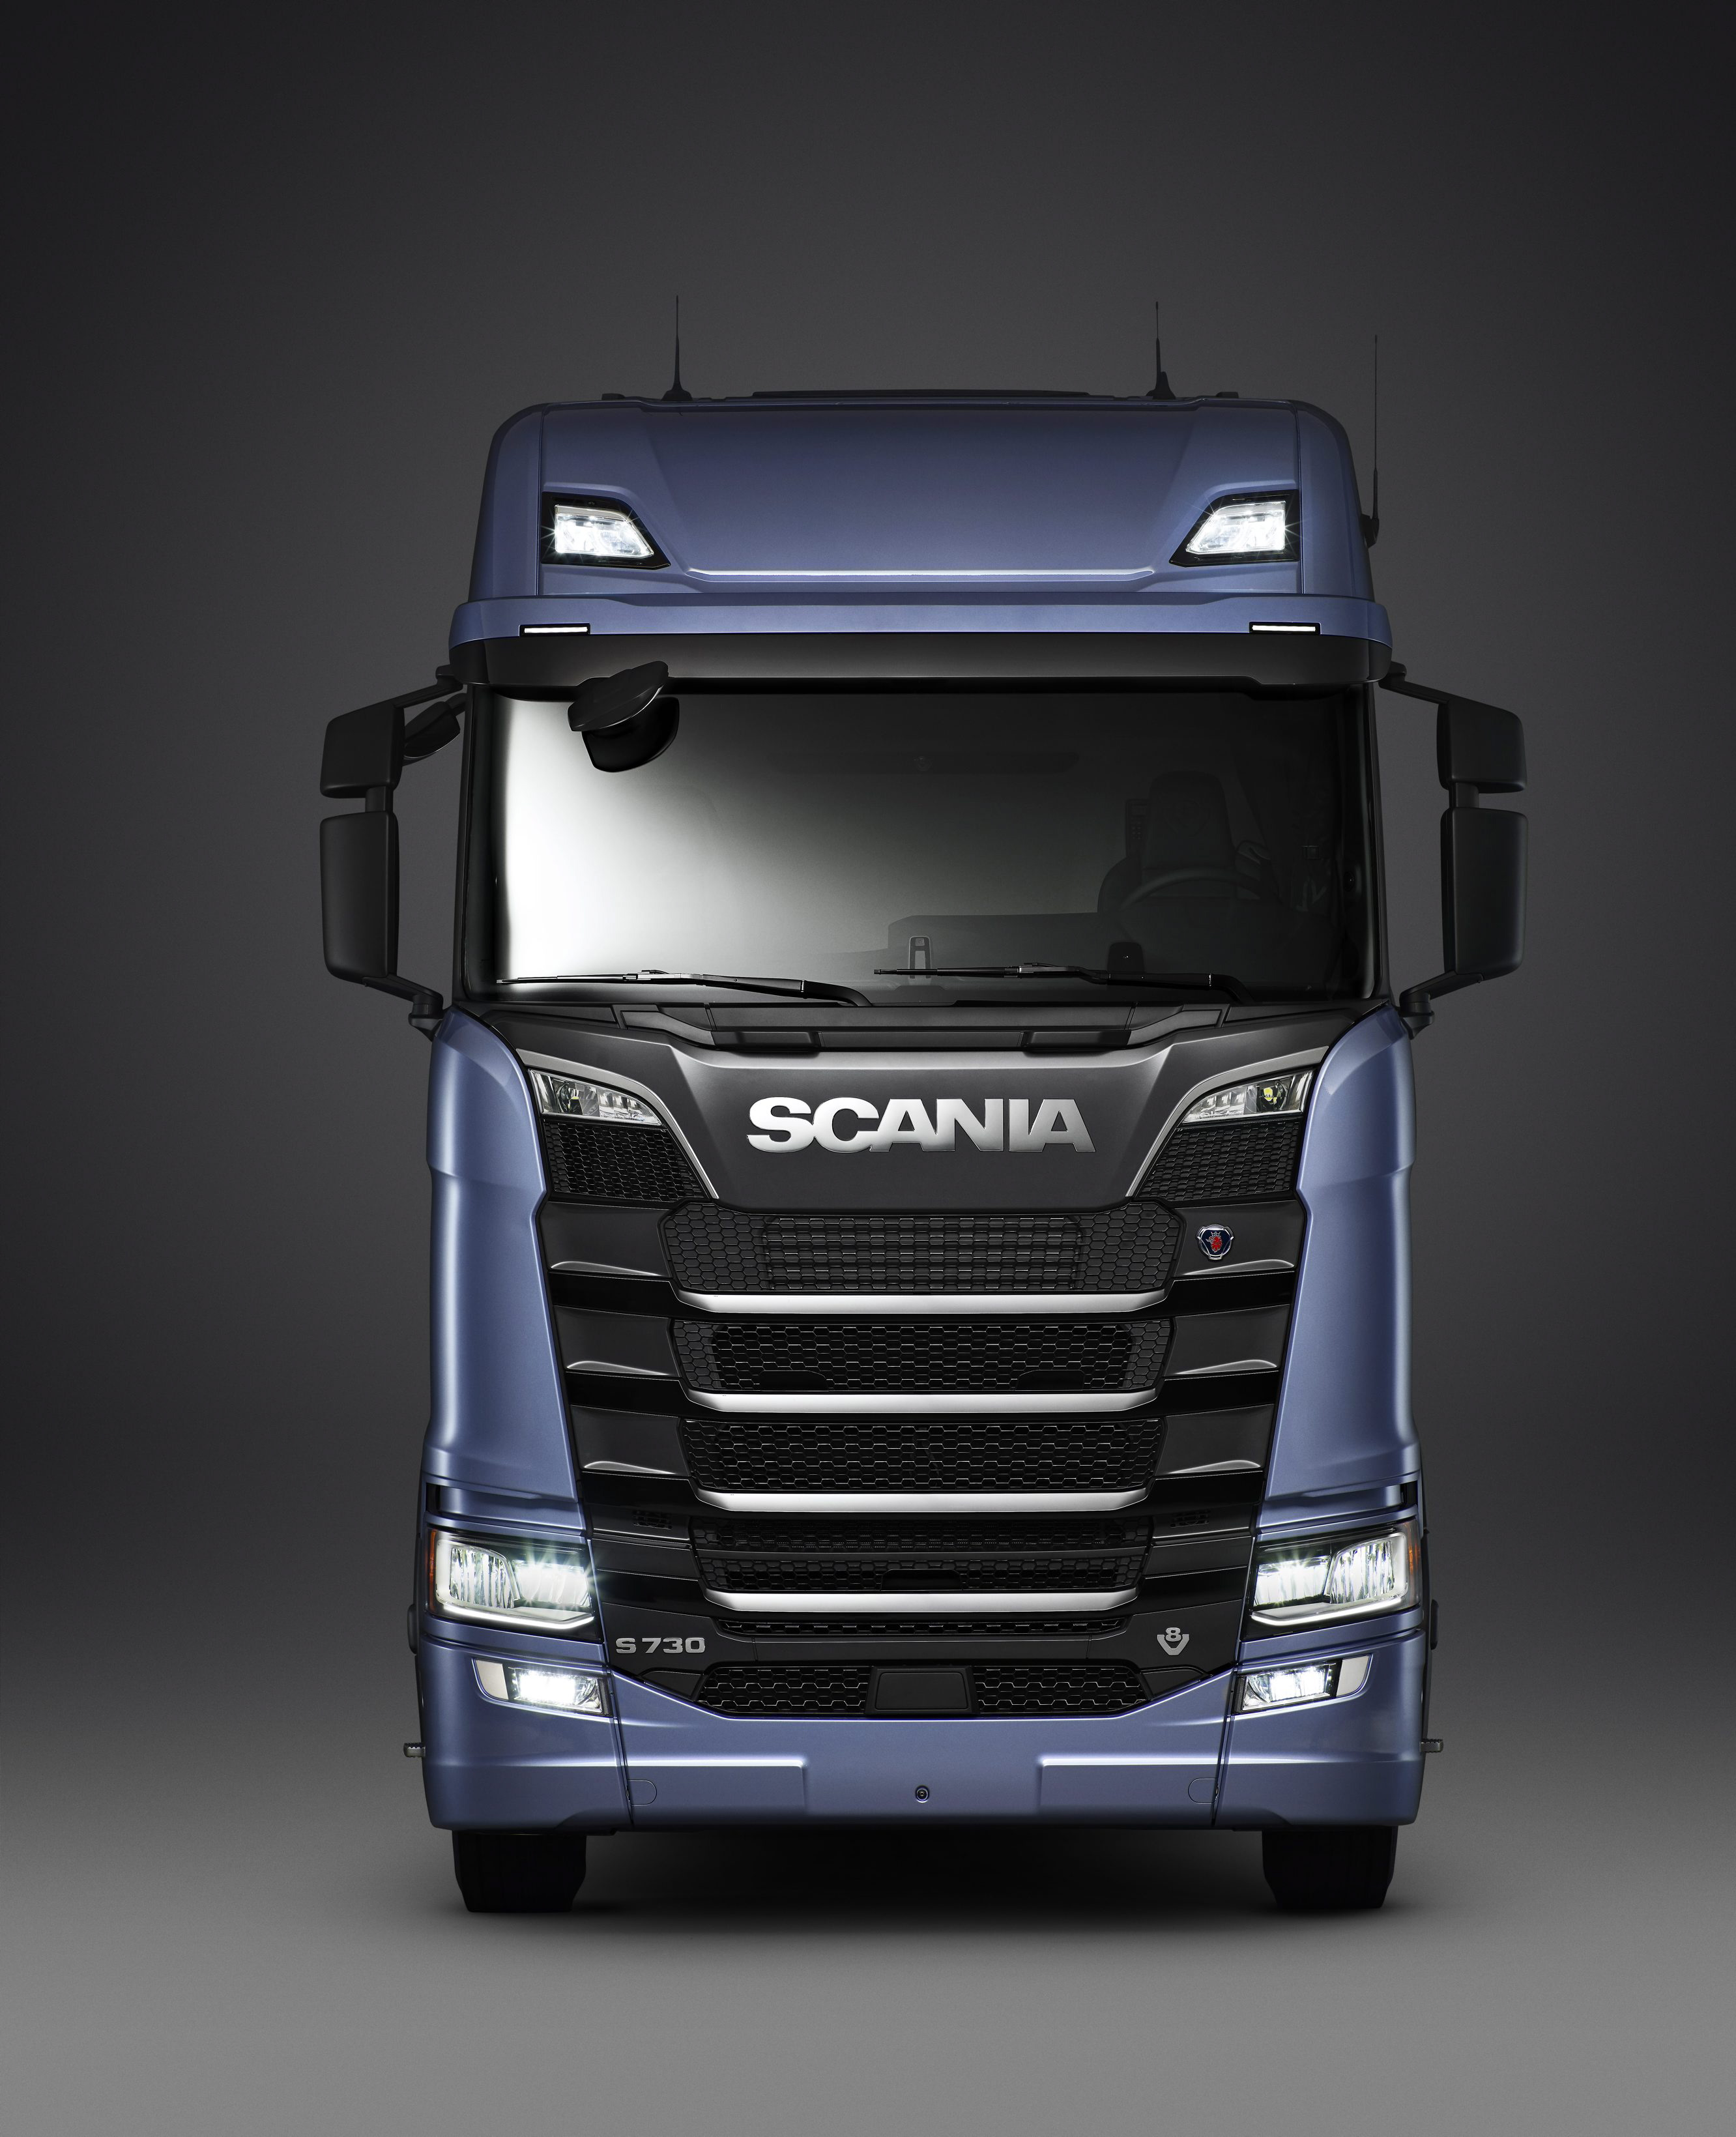 scania s new truck generation honoured the s series elected international truck of the year. Black Bedroom Furniture Sets. Home Design Ideas